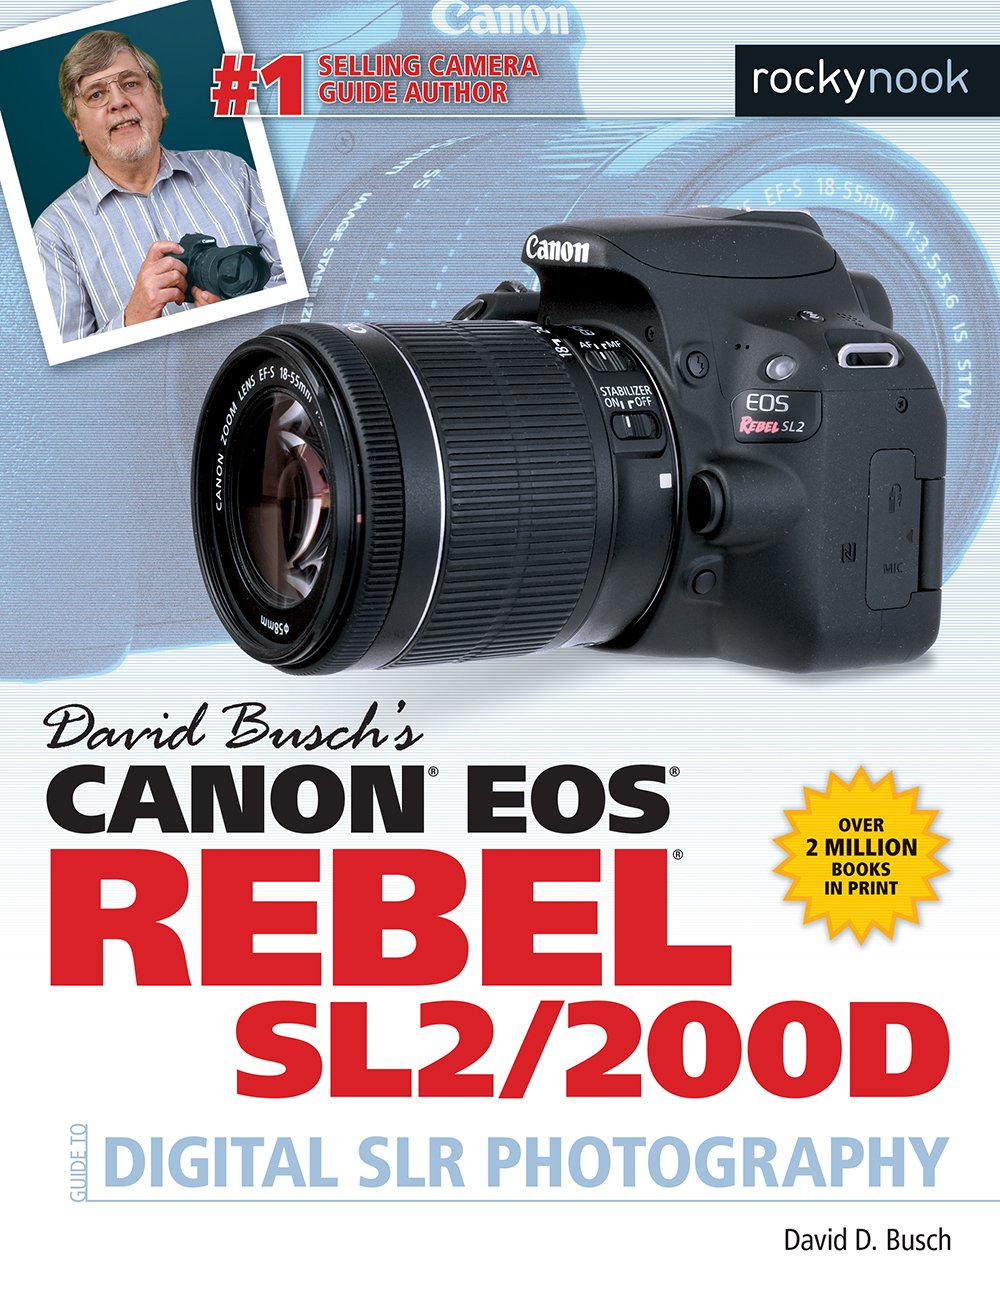 David Buschs Canon EOS Rebel Sl2/200d Guide to Digital Slr ...